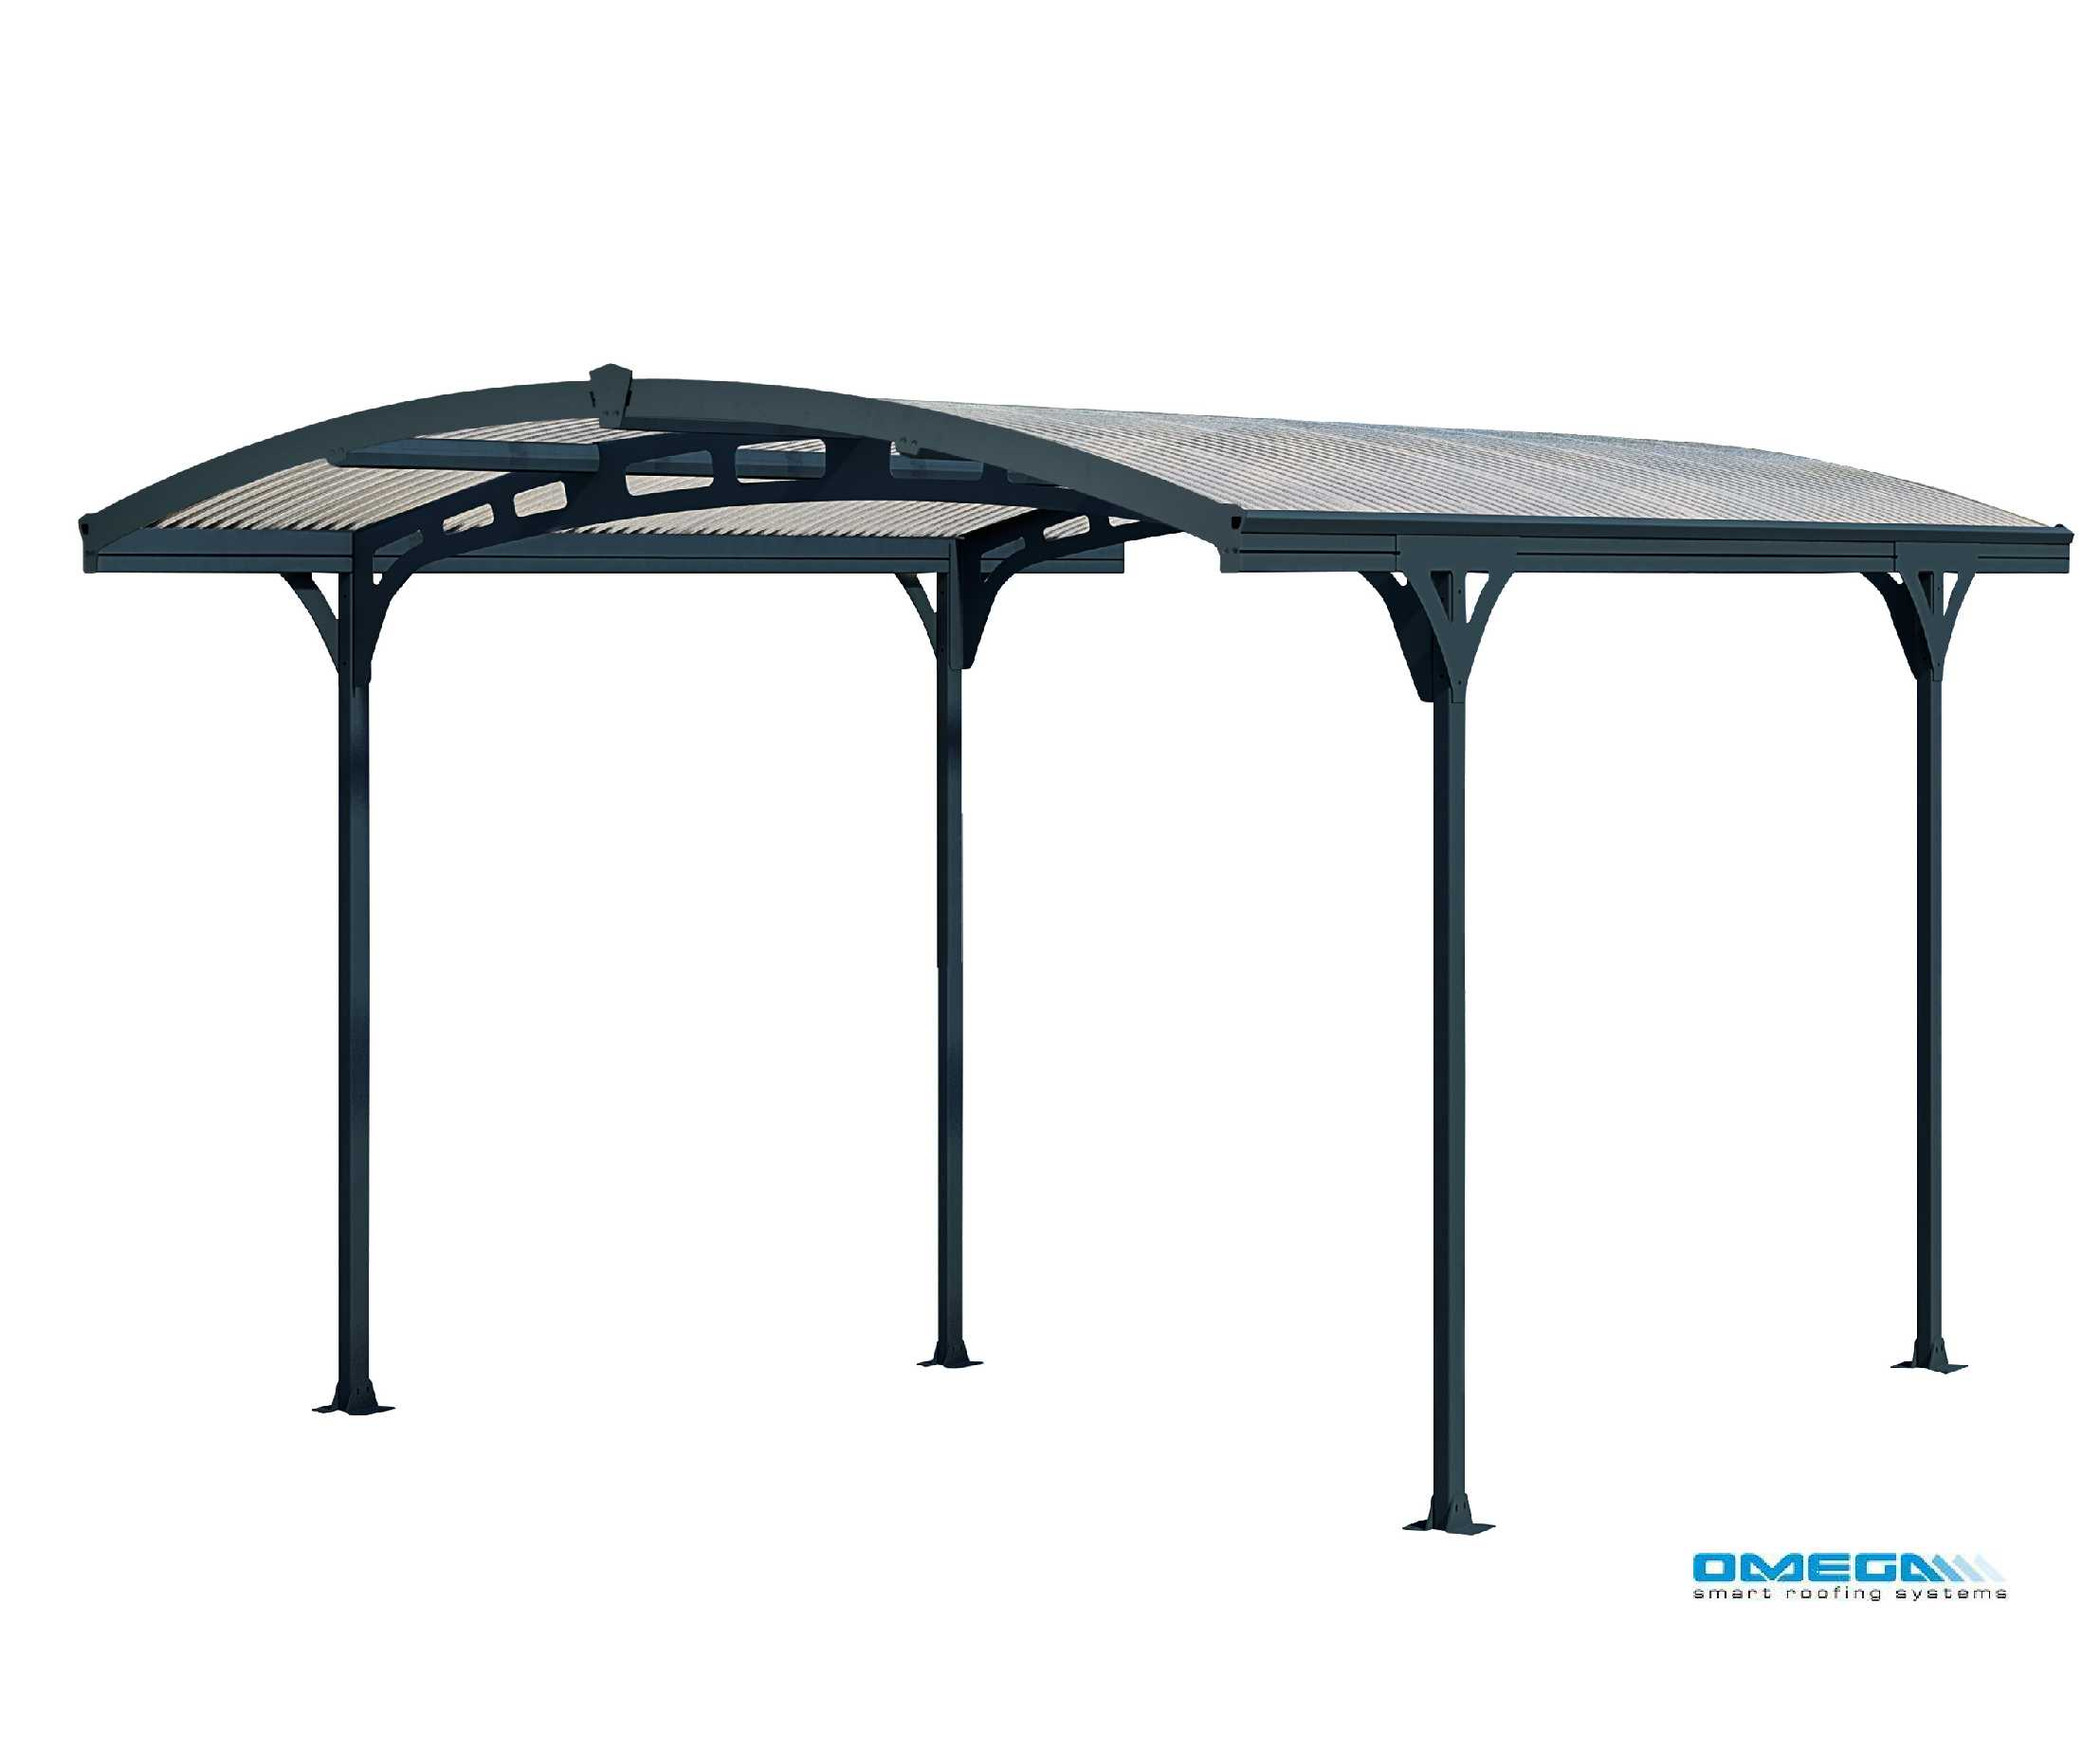 Affordable Atlas 5000 Curved Freestanding Canopy 4950 x 2879mm